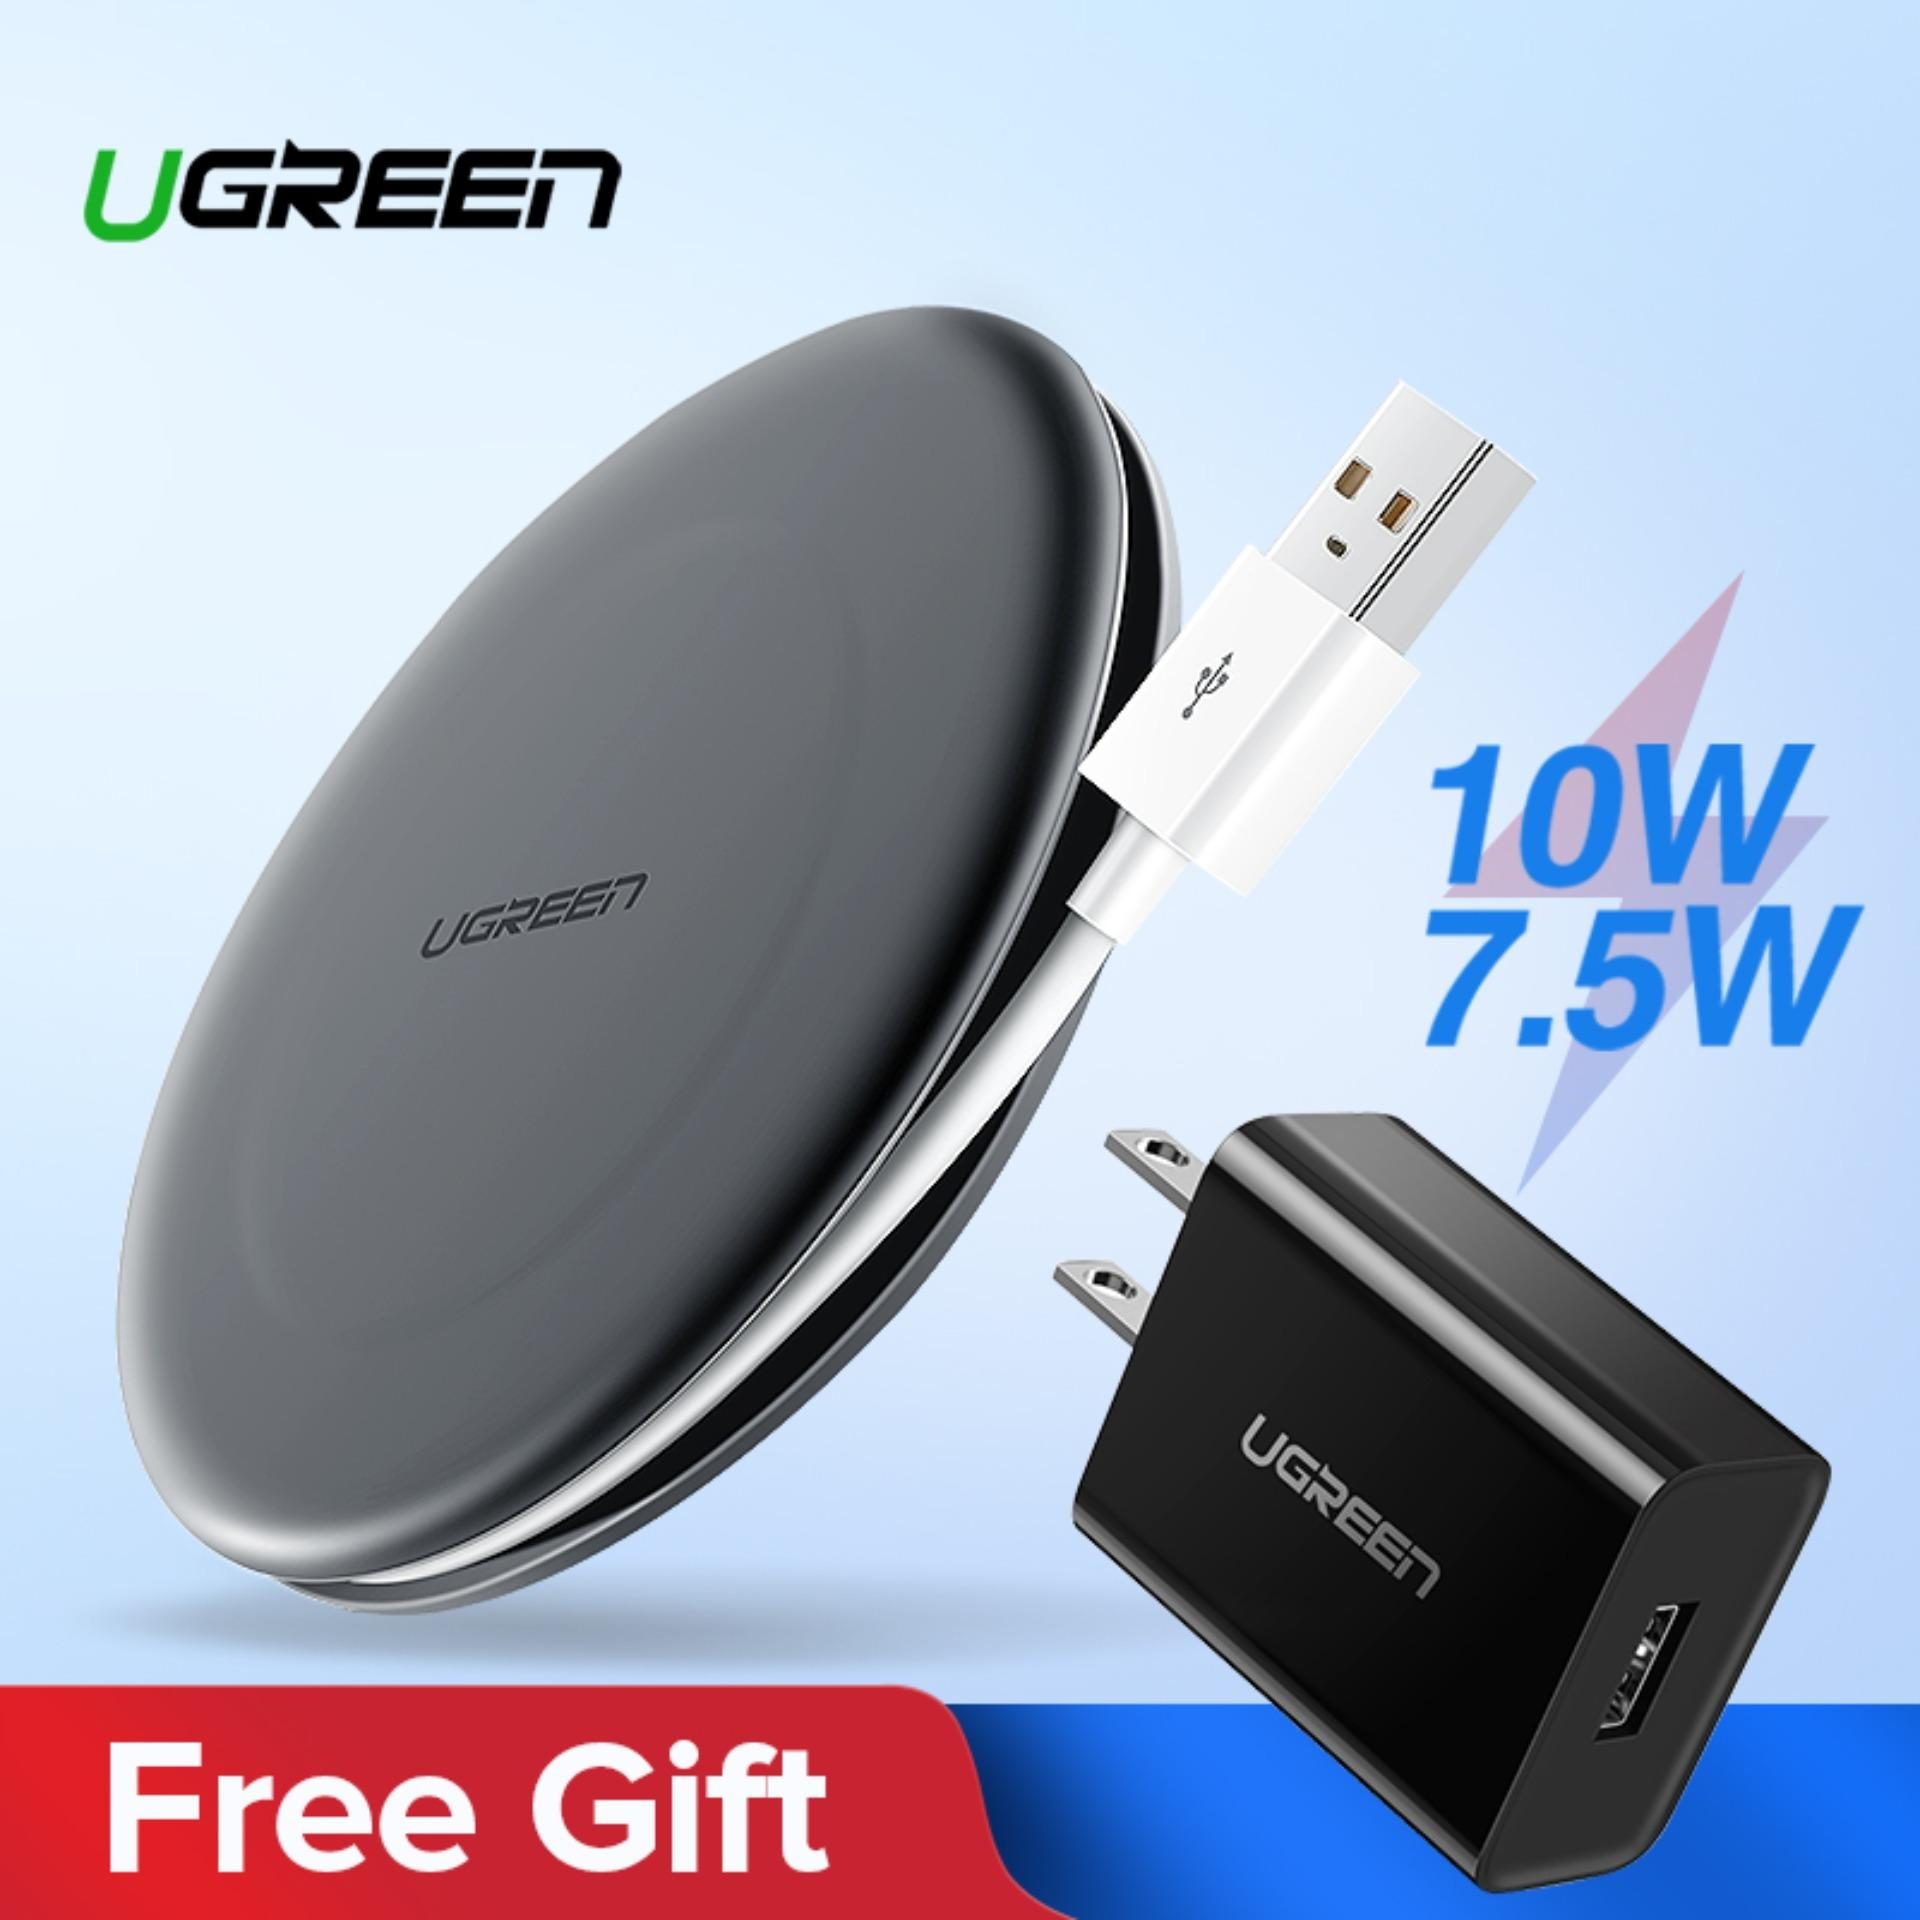 【Free QC3 0 Quick Charger】UGREEN Wireless Charger 10W 7 5W Qi Wireless  Charging for xiaomi mi 9 iPhone X XS 8 XR Samsung S10 S9 S8 Note 9 Huawei